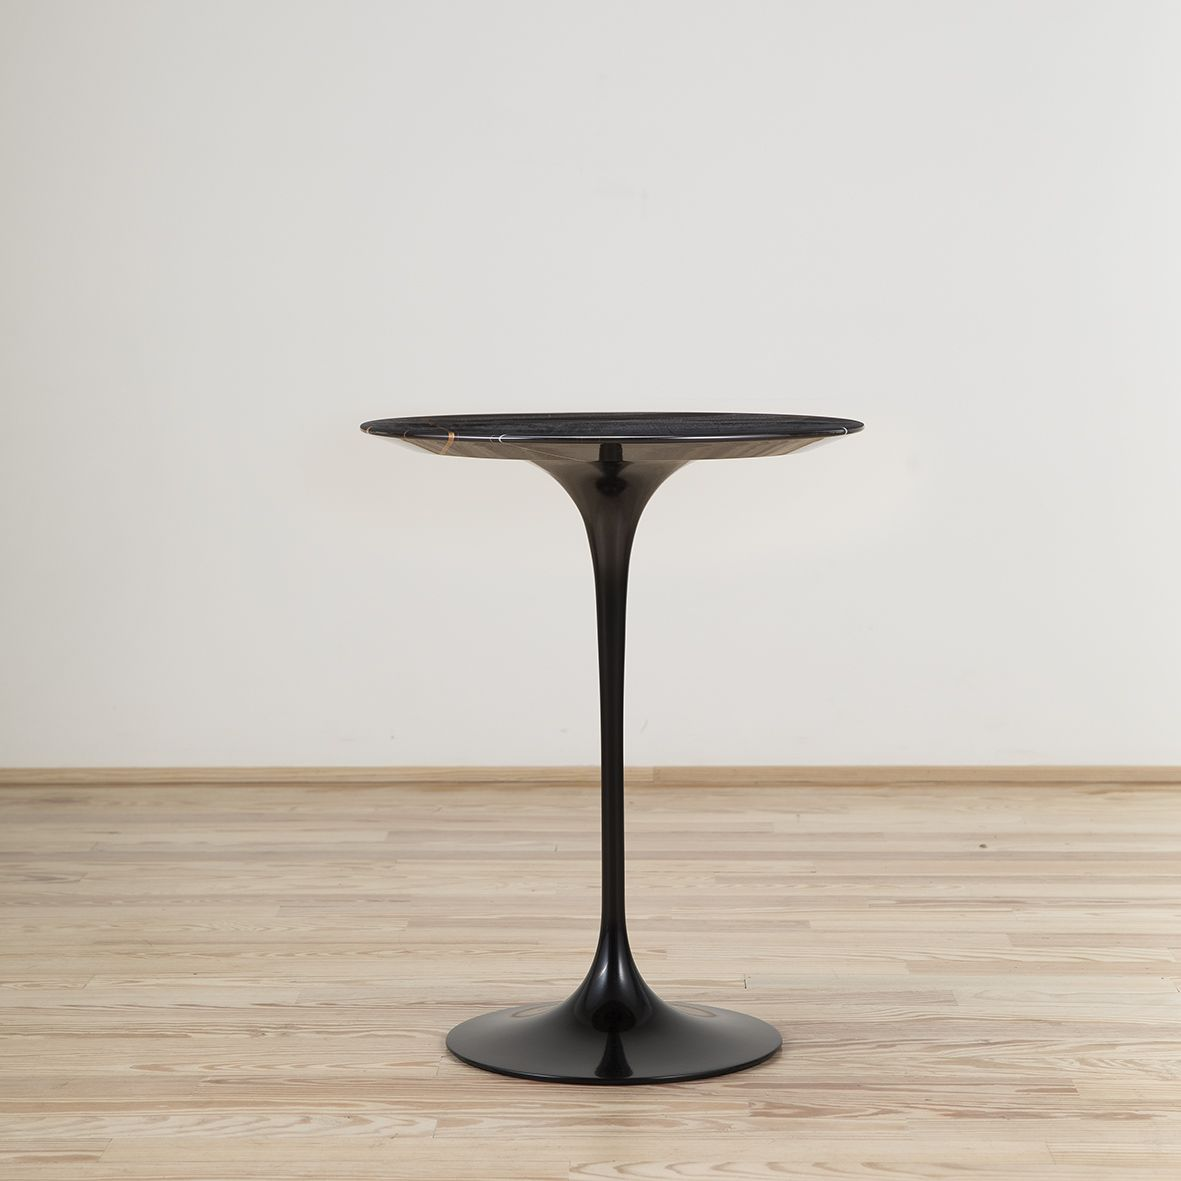 Saarinen Knoll Table Mesa Auxiliar Tulip Saarinen Stock Knoll